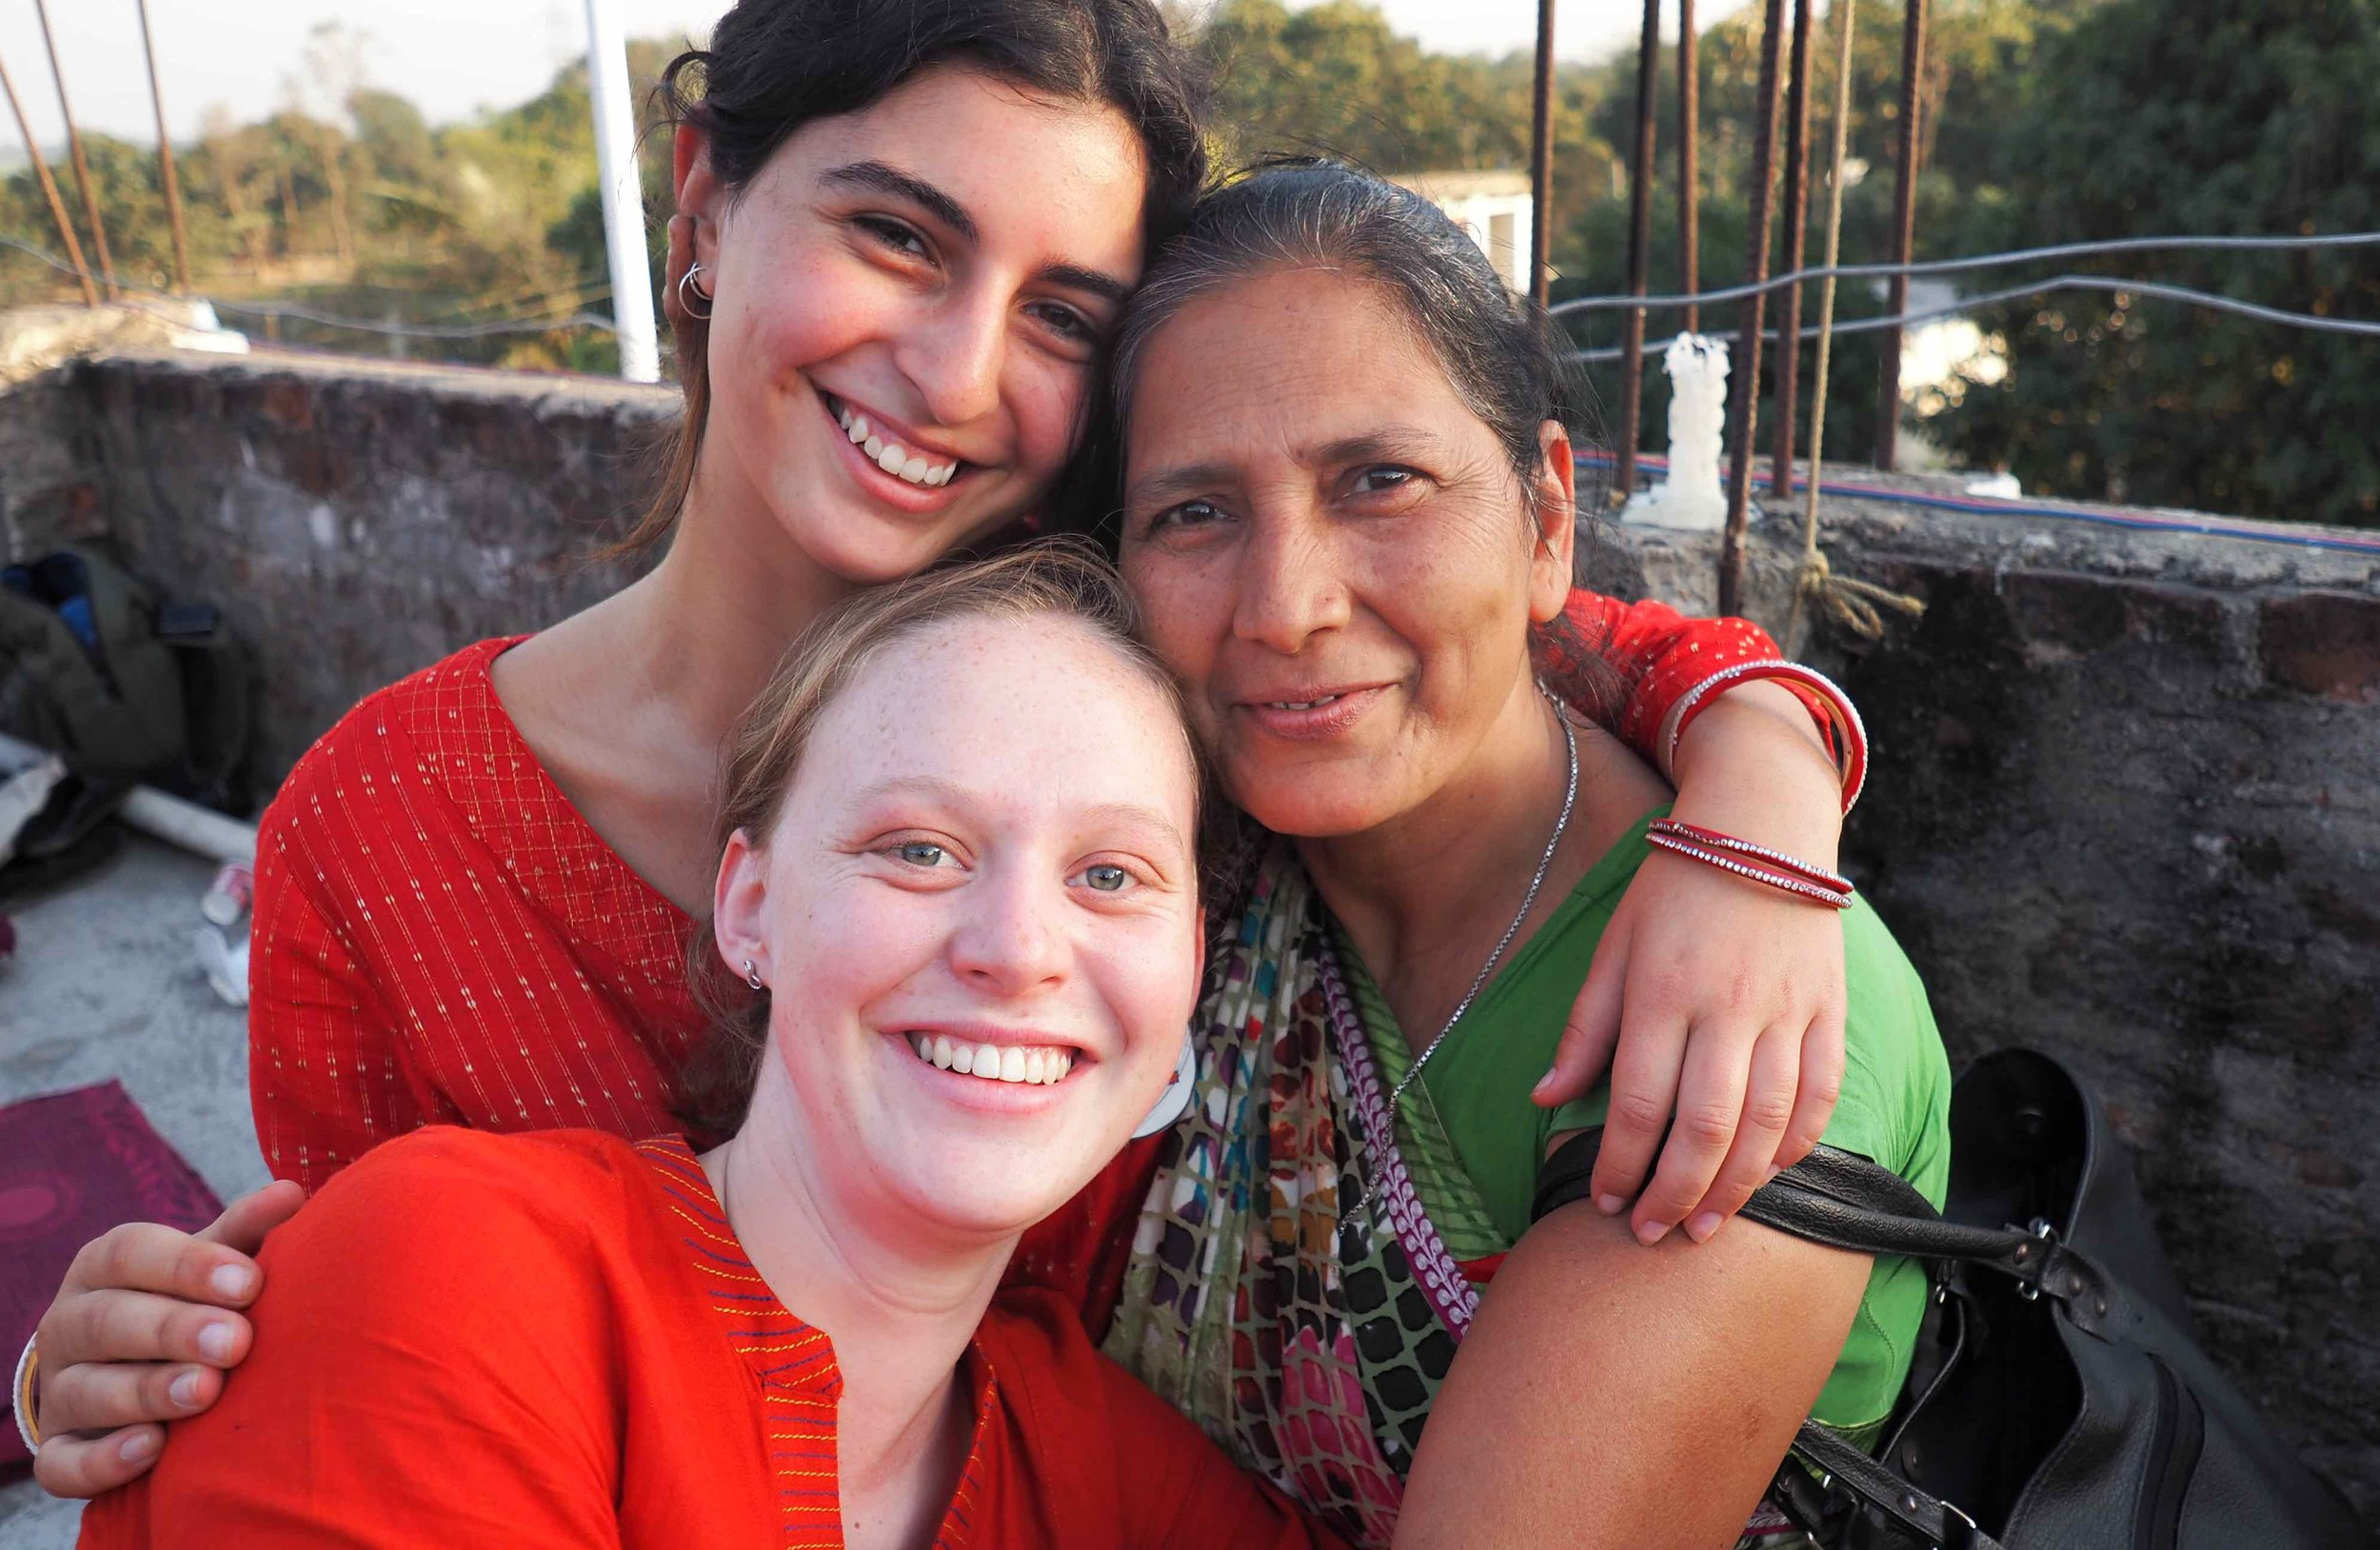 Read Catherine's experiences in India